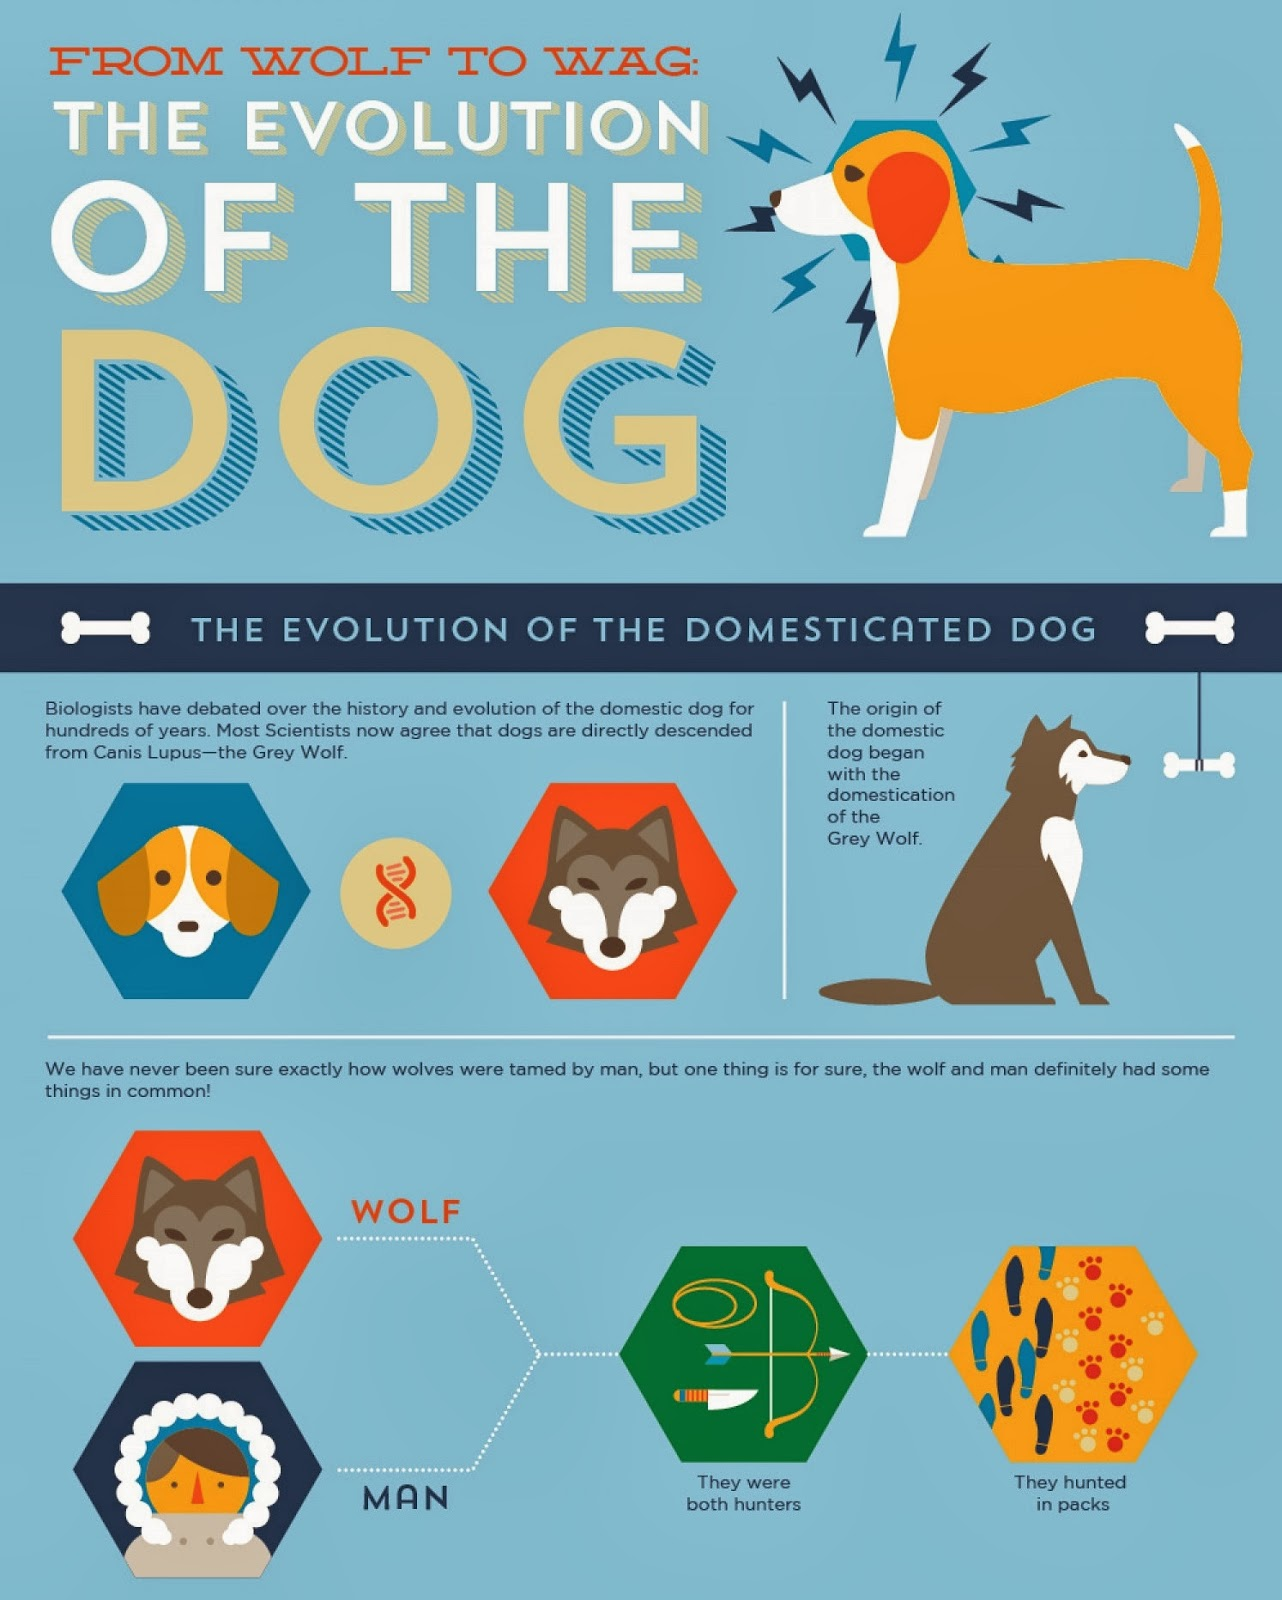 http://visual.ly/evolution-dog